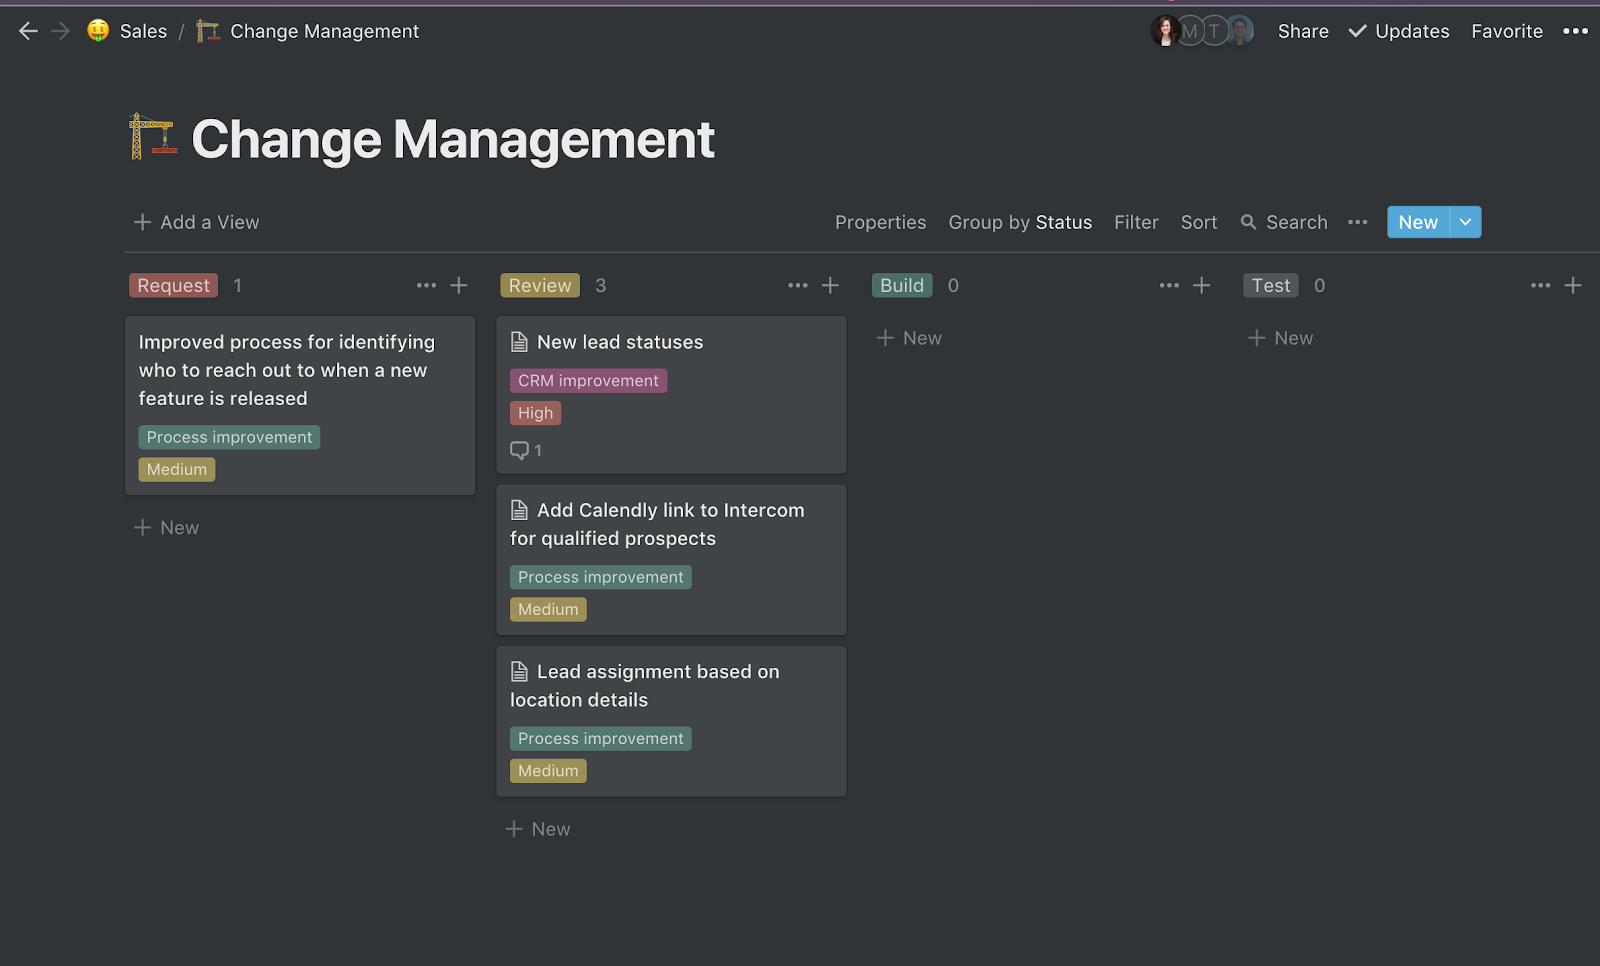 Change management board example